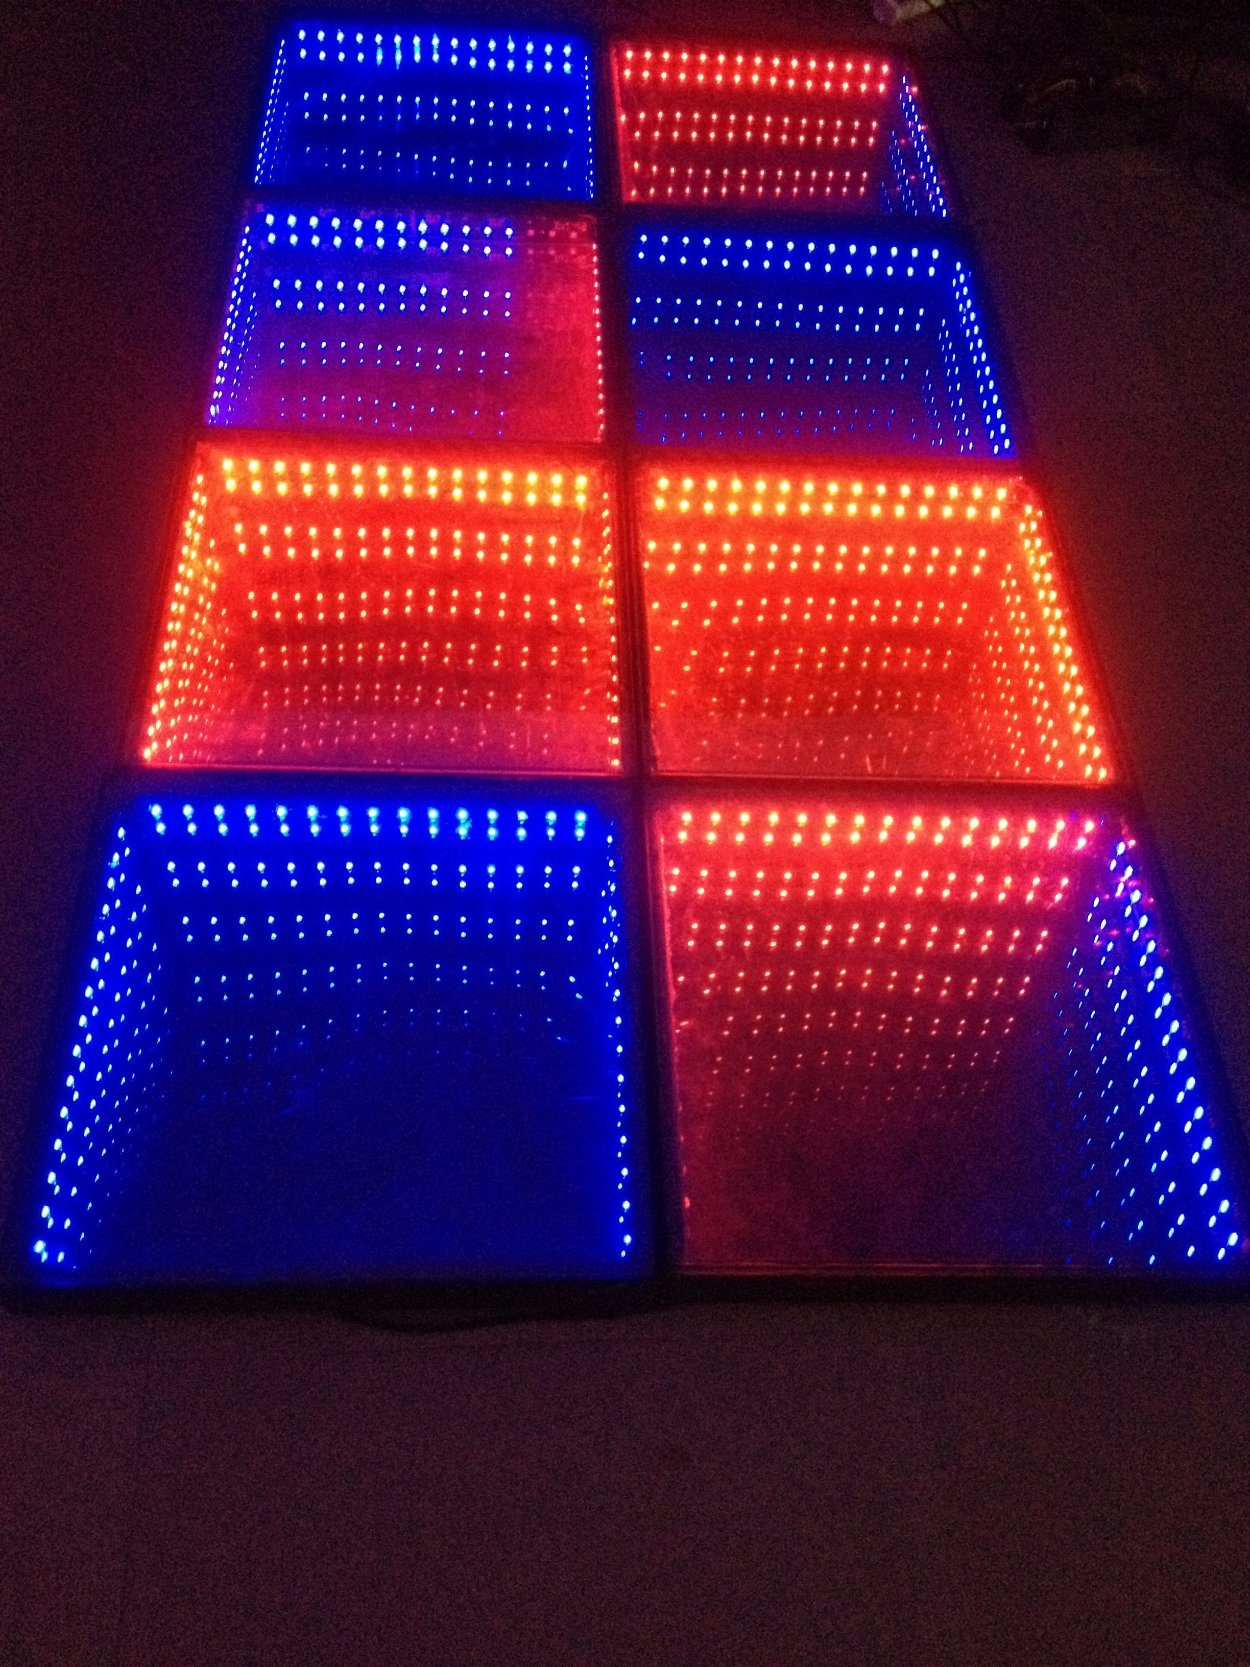 Hot Item Magic Back To The Abyss Tiles Tile Led Stage Lights And Brick Bar Dj Dance Floor Party